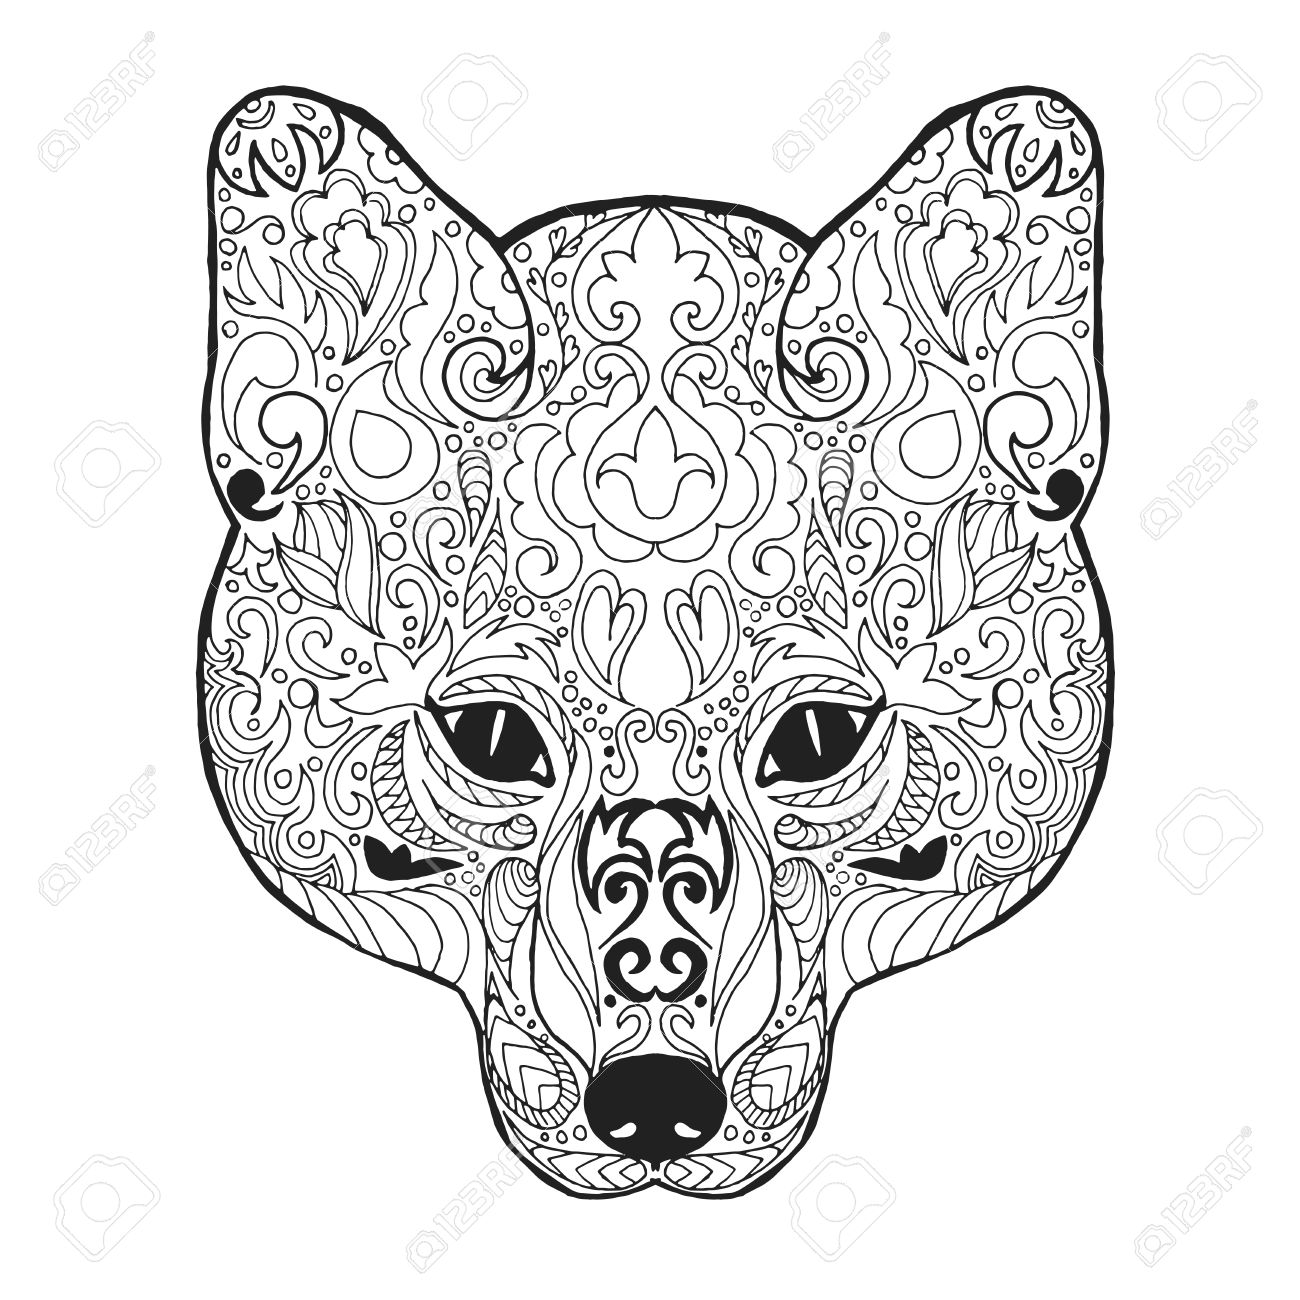 Fox Head Adult Antistress Coloring Page Black White Hand Drawn Royalty Free Cliparts Vectors And Stock Illustration Image 46777613